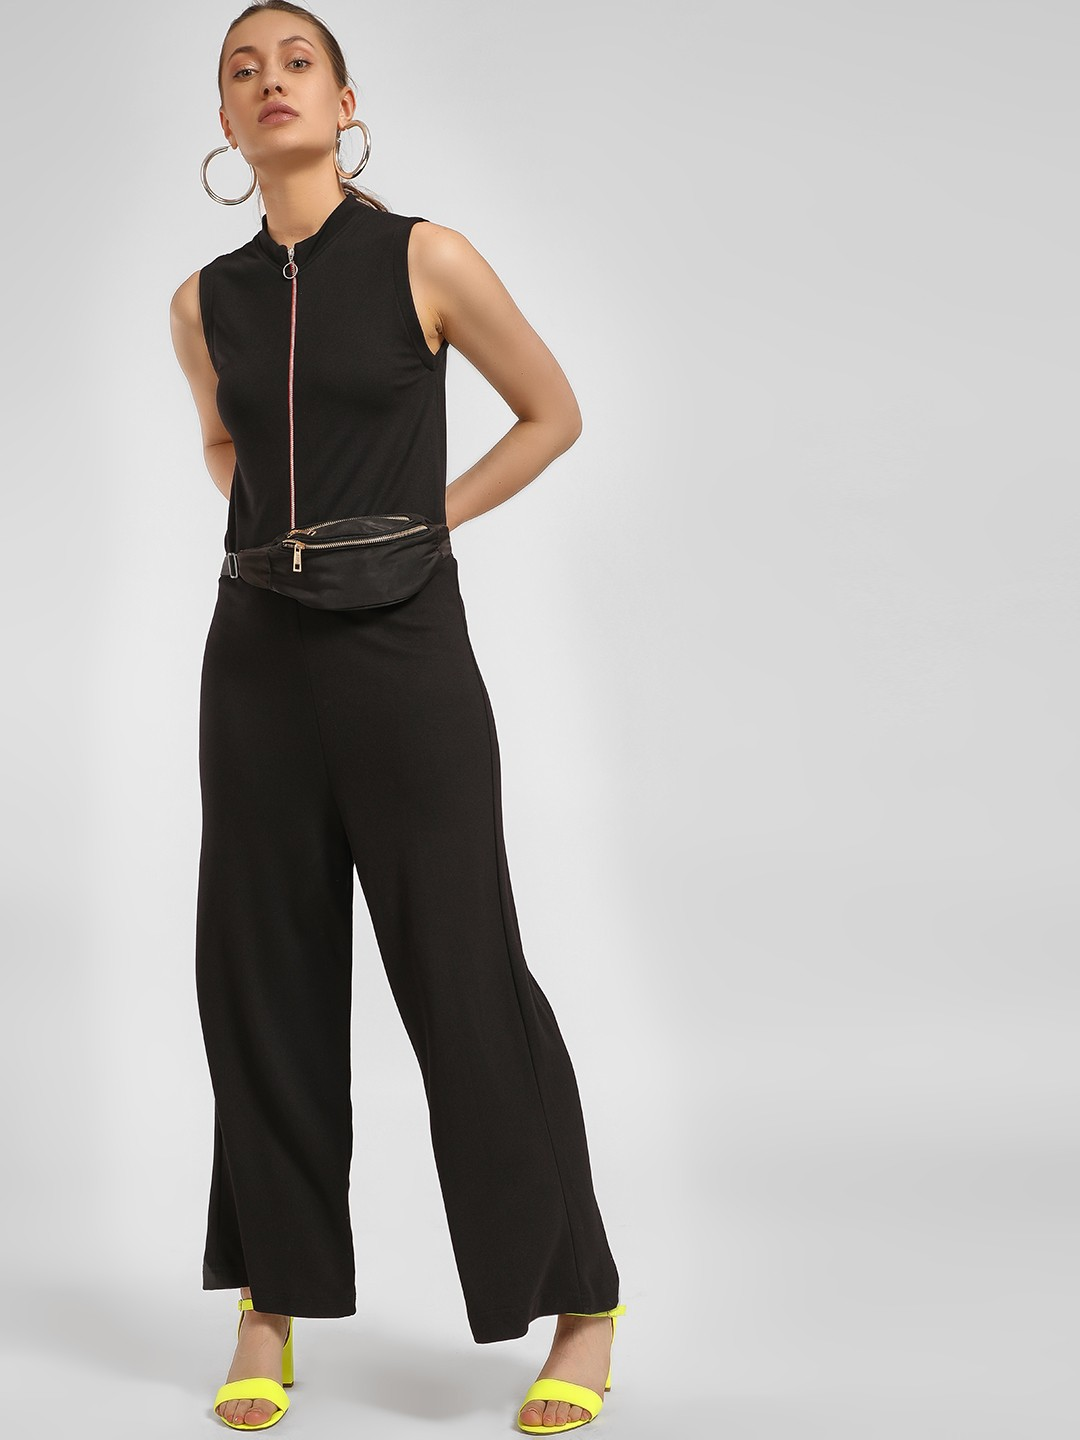 LC Waikiki Black Basic Zip-Up Sleeveless Jumpsuit 1